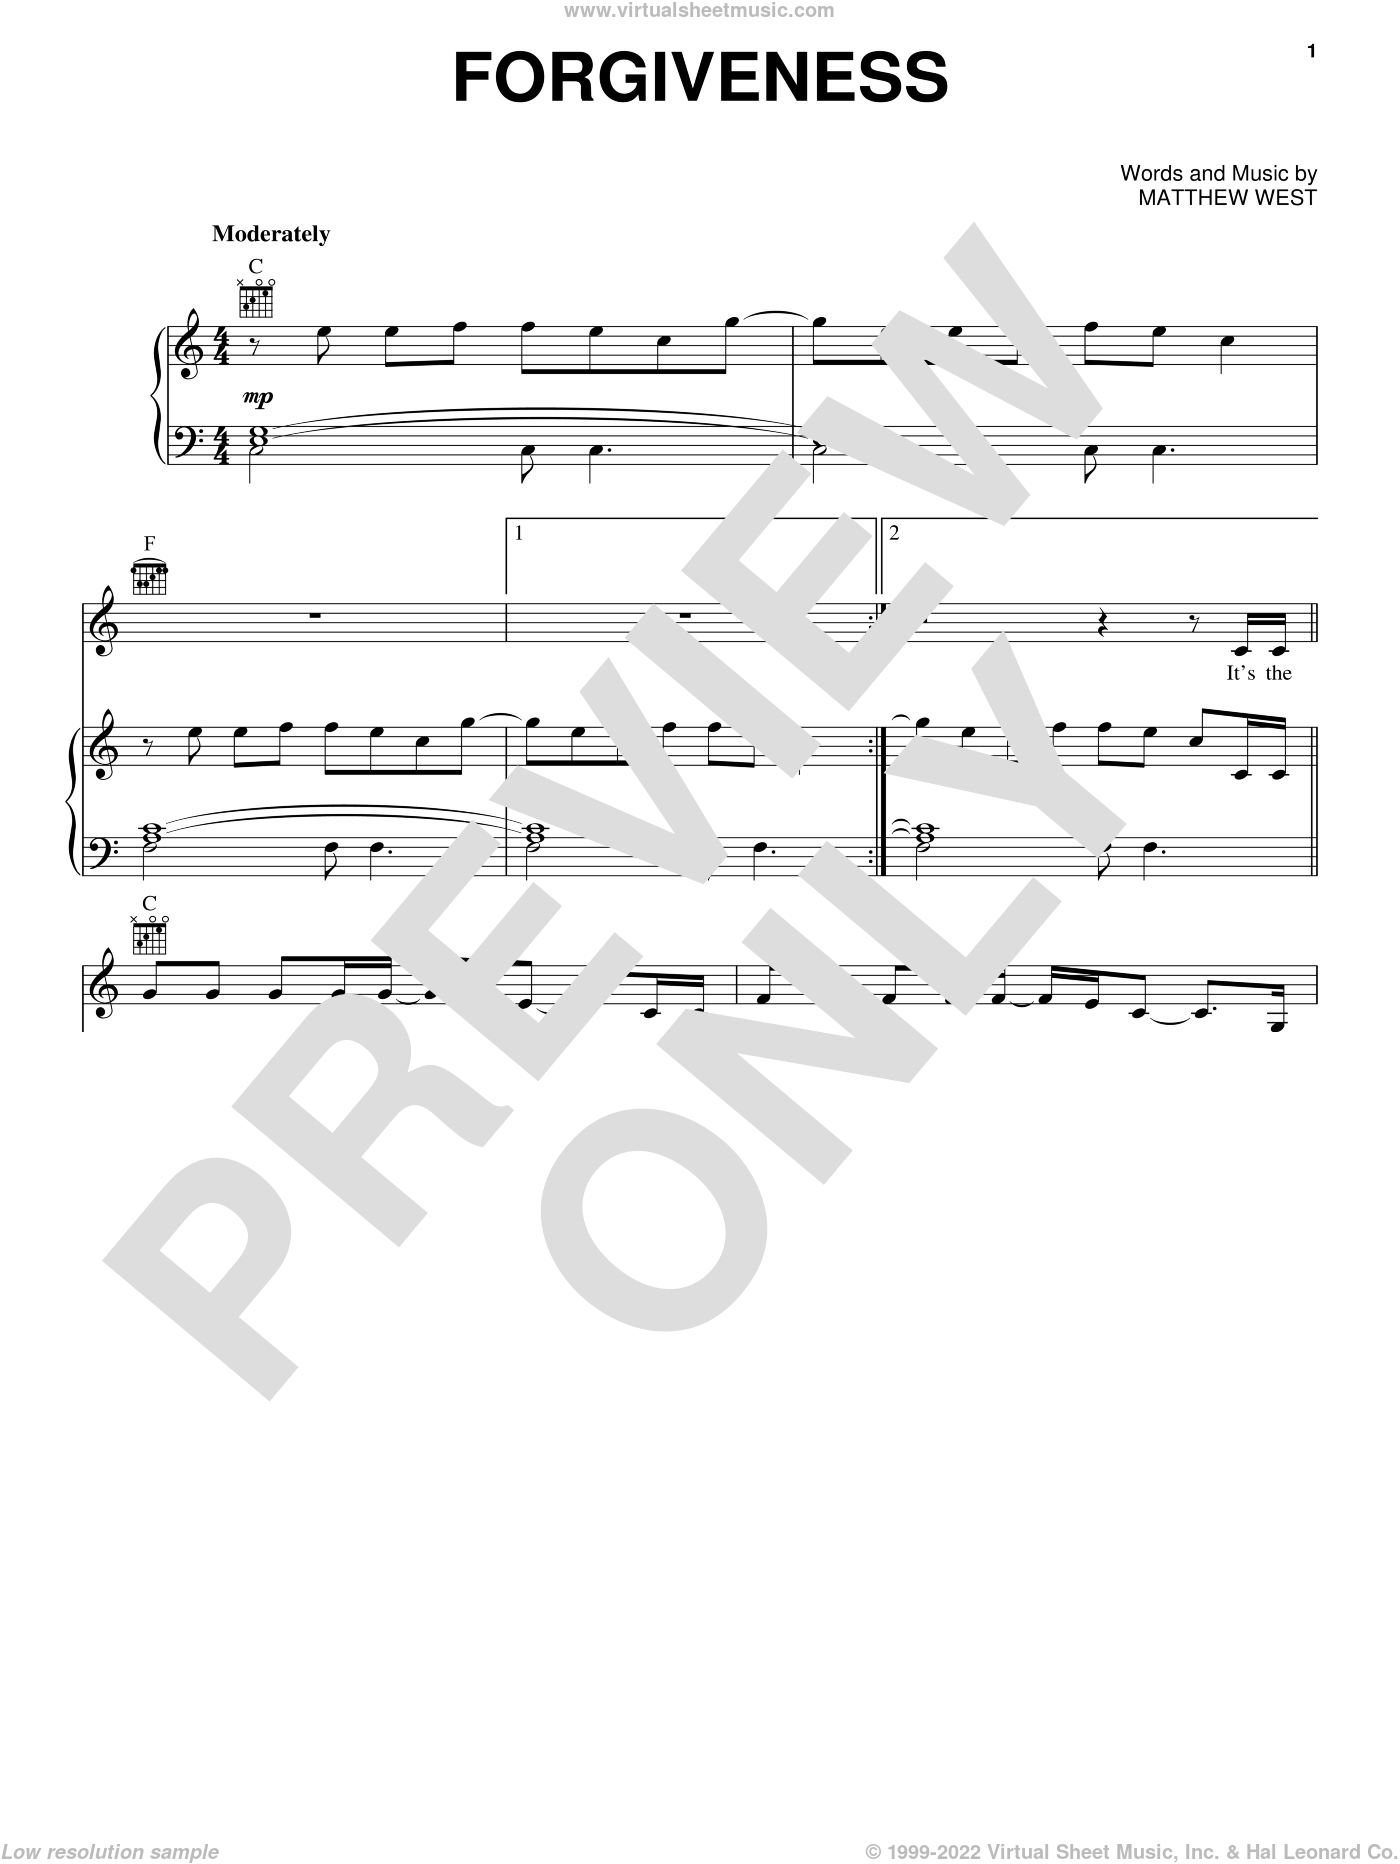 Forgiveness sheet music for voice, piano or guitar by Matthew West, intermediate skill level